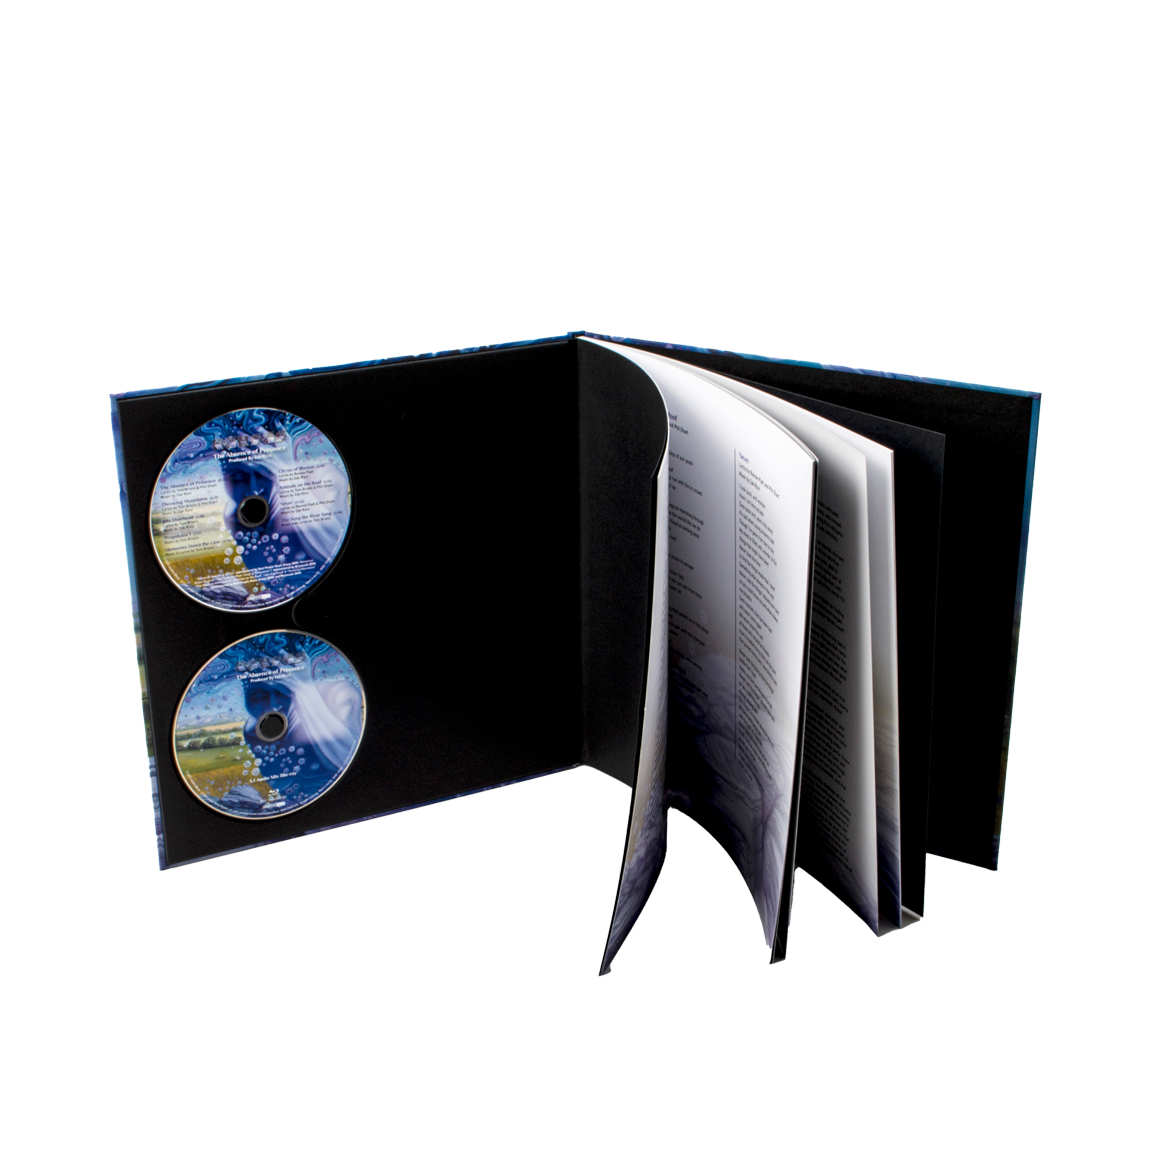 Kansas - The Absence Of Presence Ltd. Deluxe CD + Blu-Ray Artbook + Digital Download